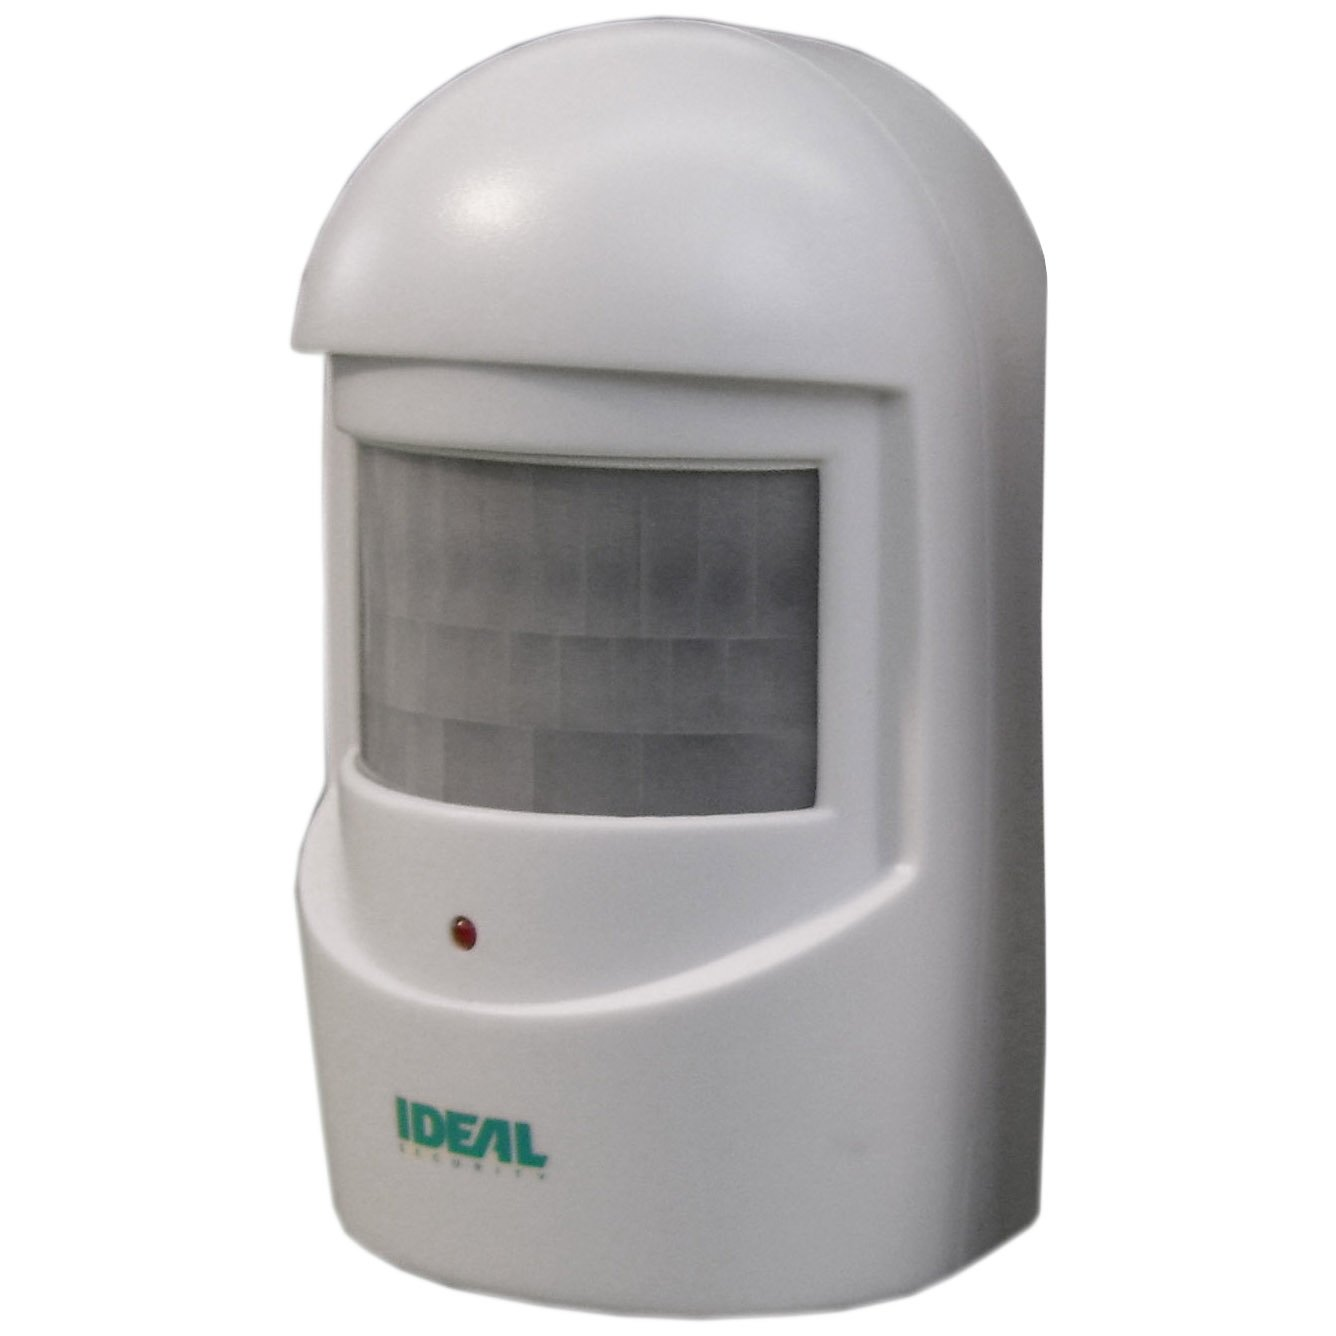 Ideal Security SK6-Series Add-on Motion Sensor Wireless, battery-operated & weatherproof White